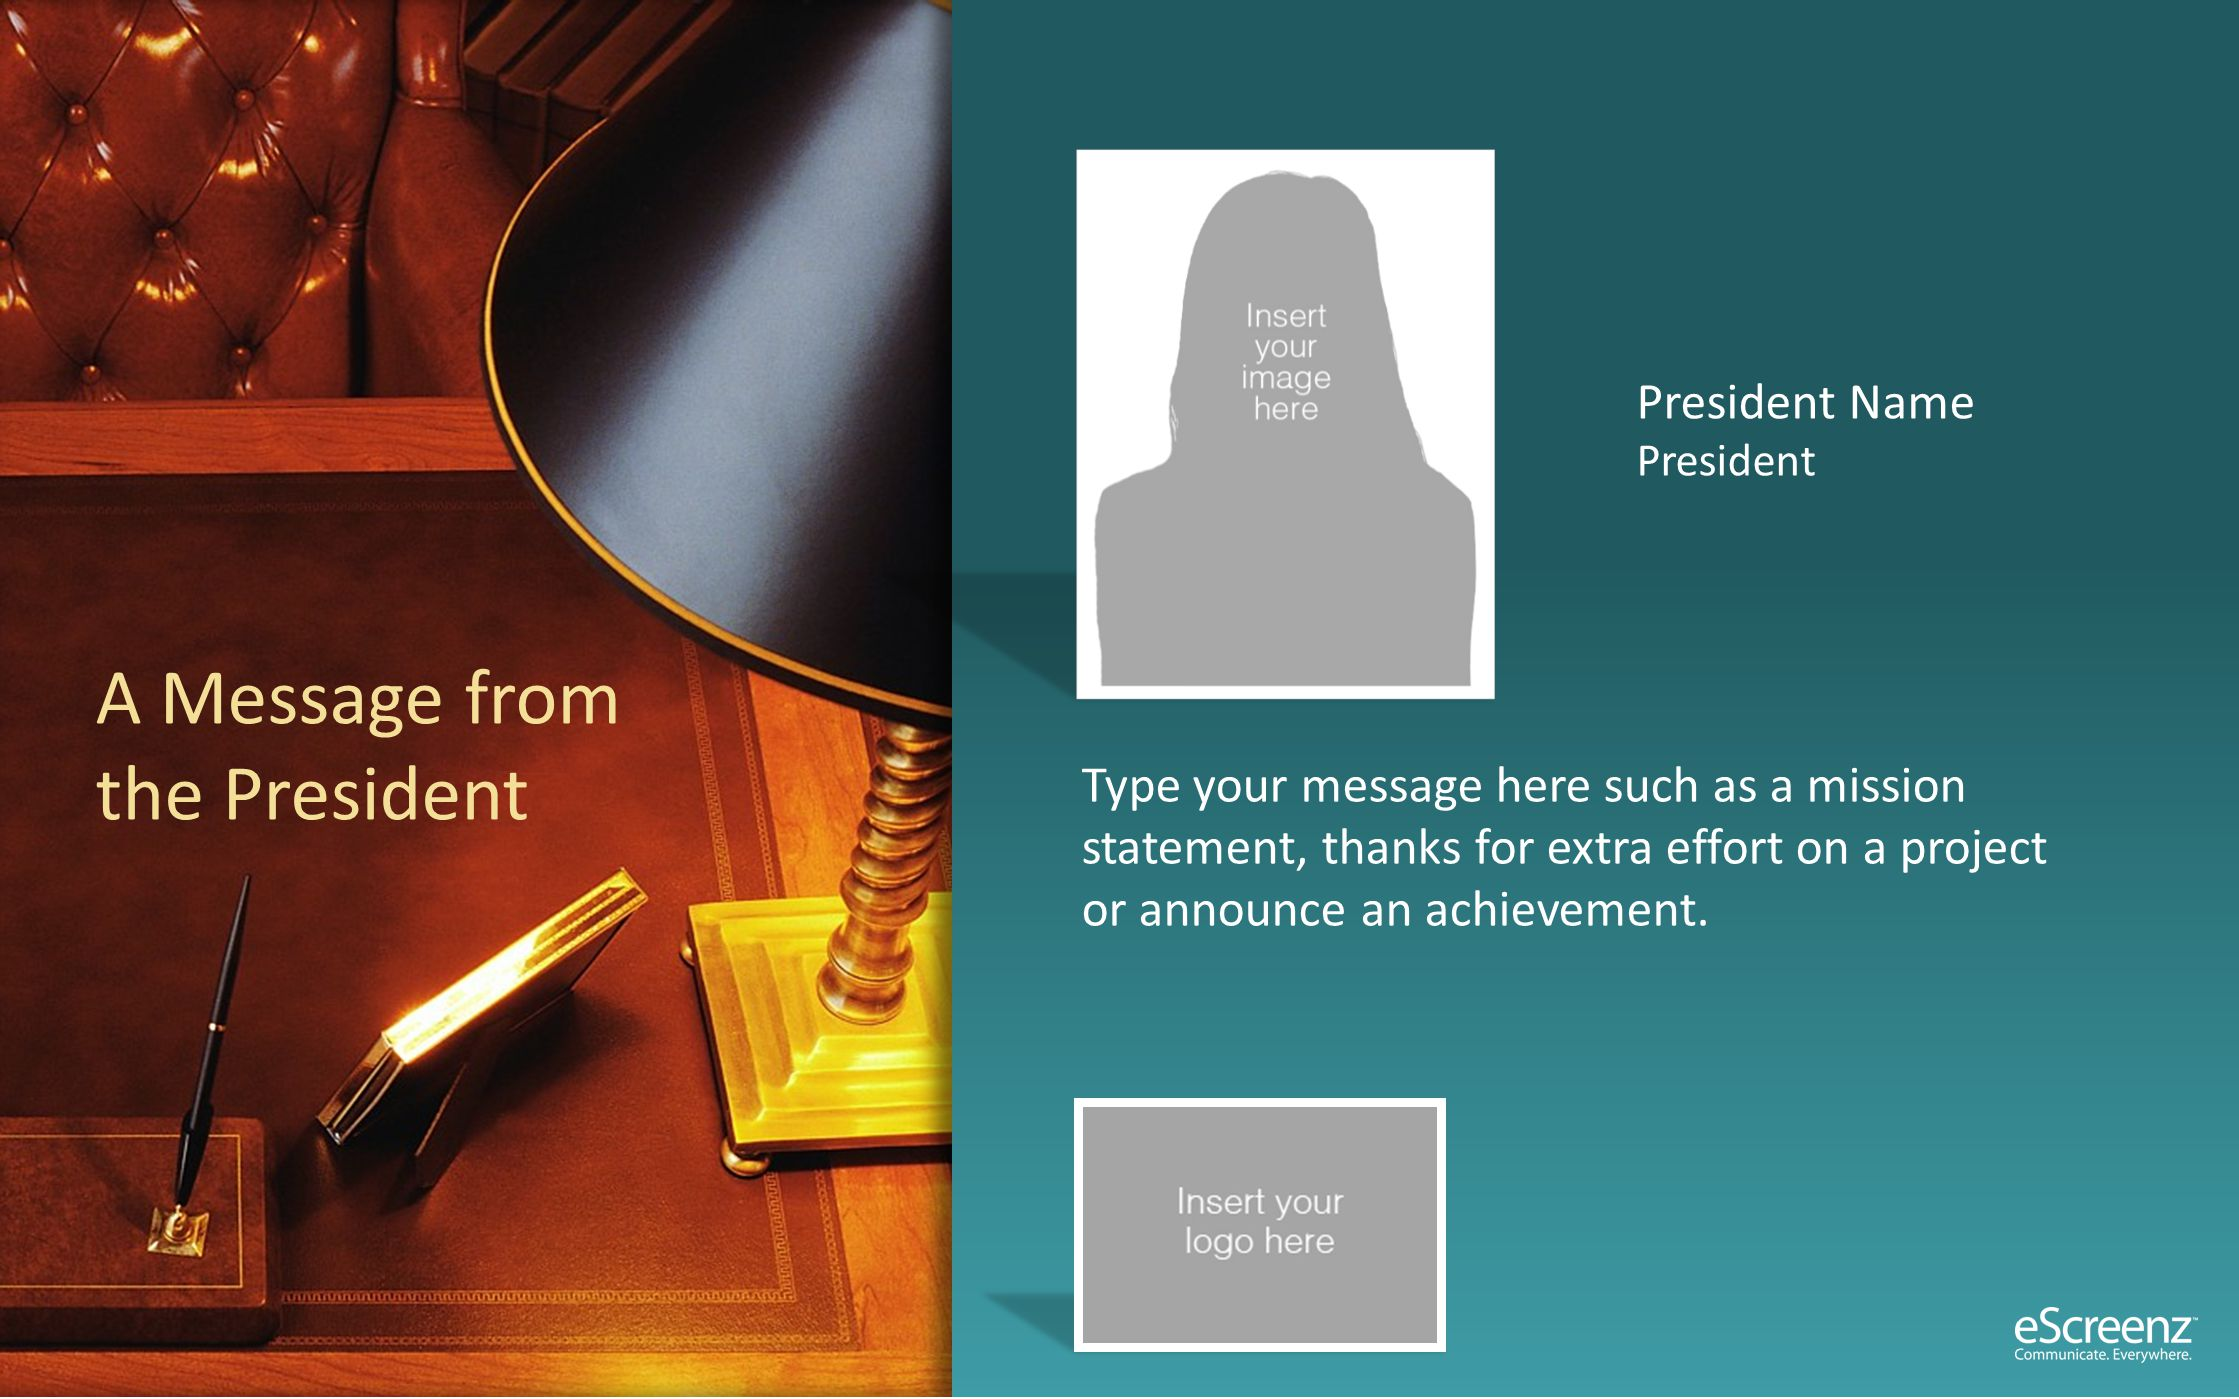 President Name President Type your message here such as a mission statement, thanks for extra effort on a project or announce an achievement.